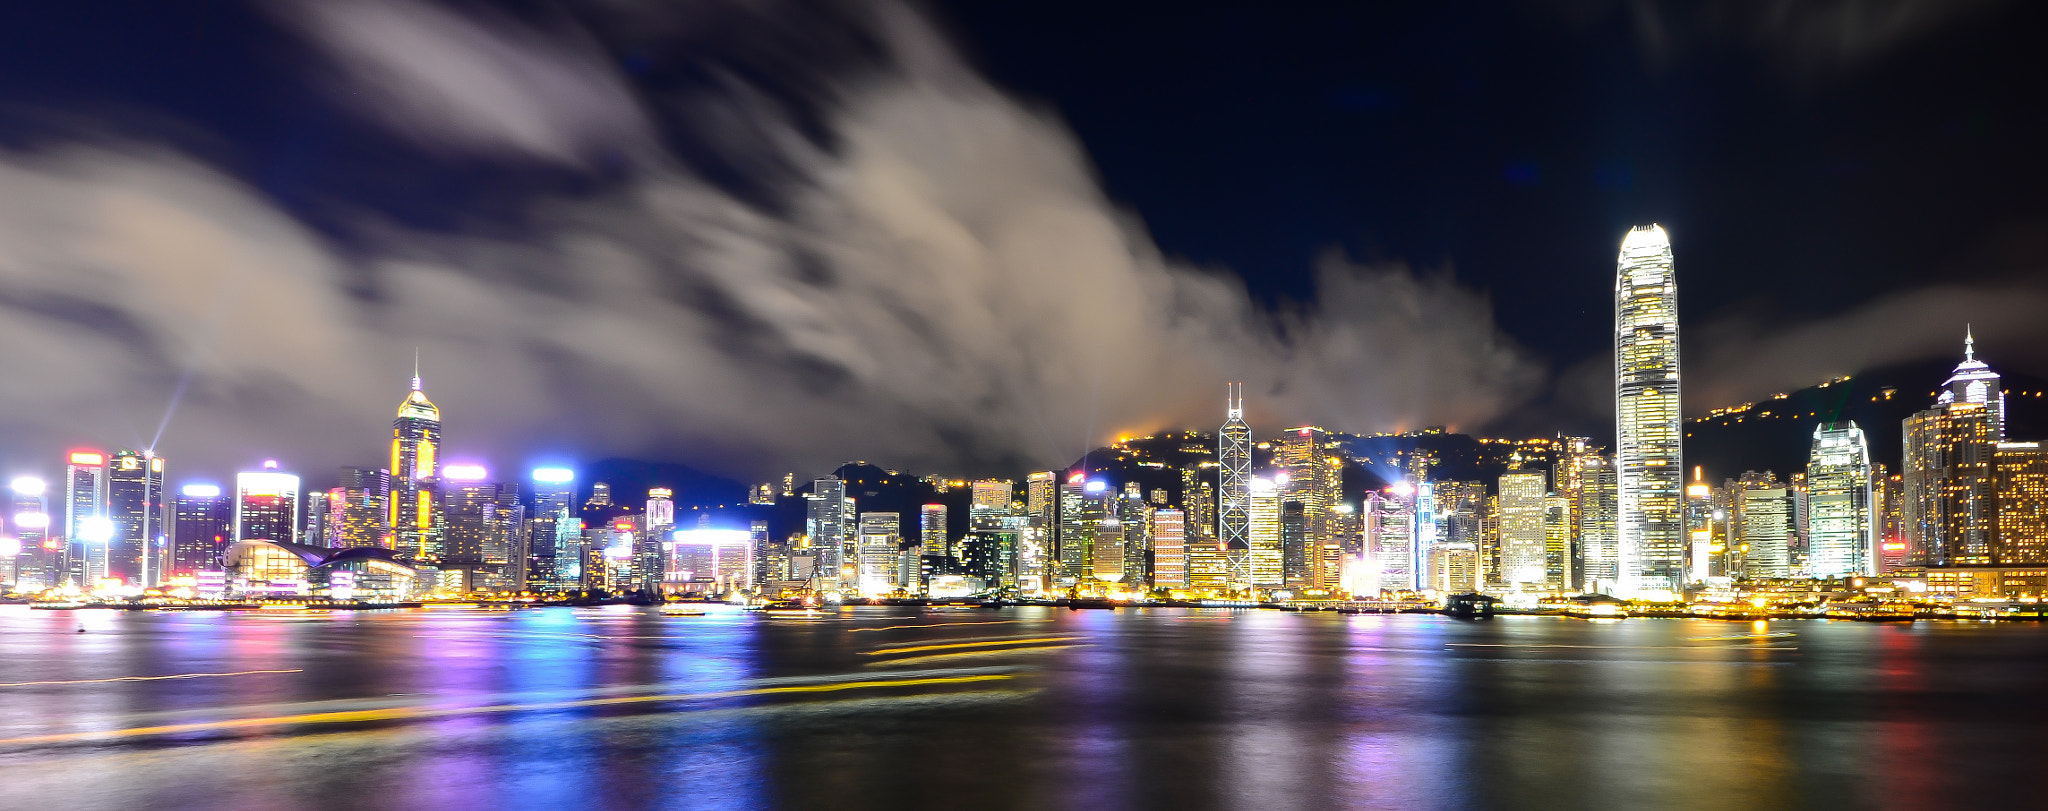 Photograph Hong Kong Night View by Man Tsui on 500px